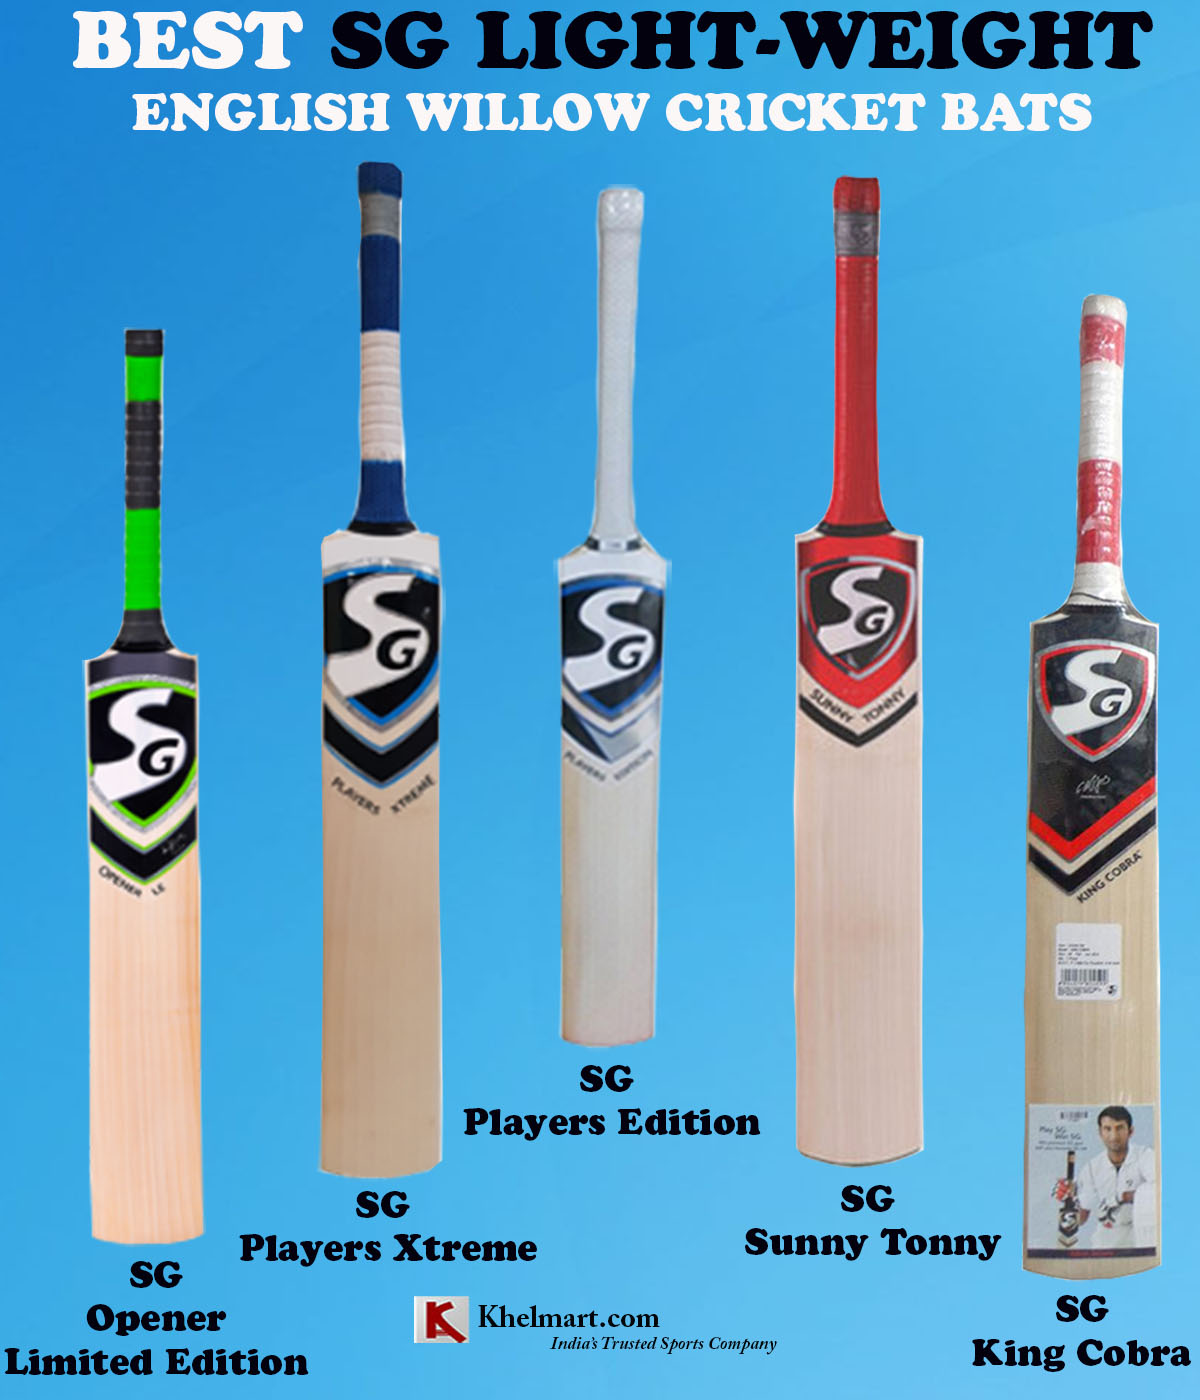 BEST SG LIGHT WEIGHT ENGLISH WILLOW CRICKET BATS_1